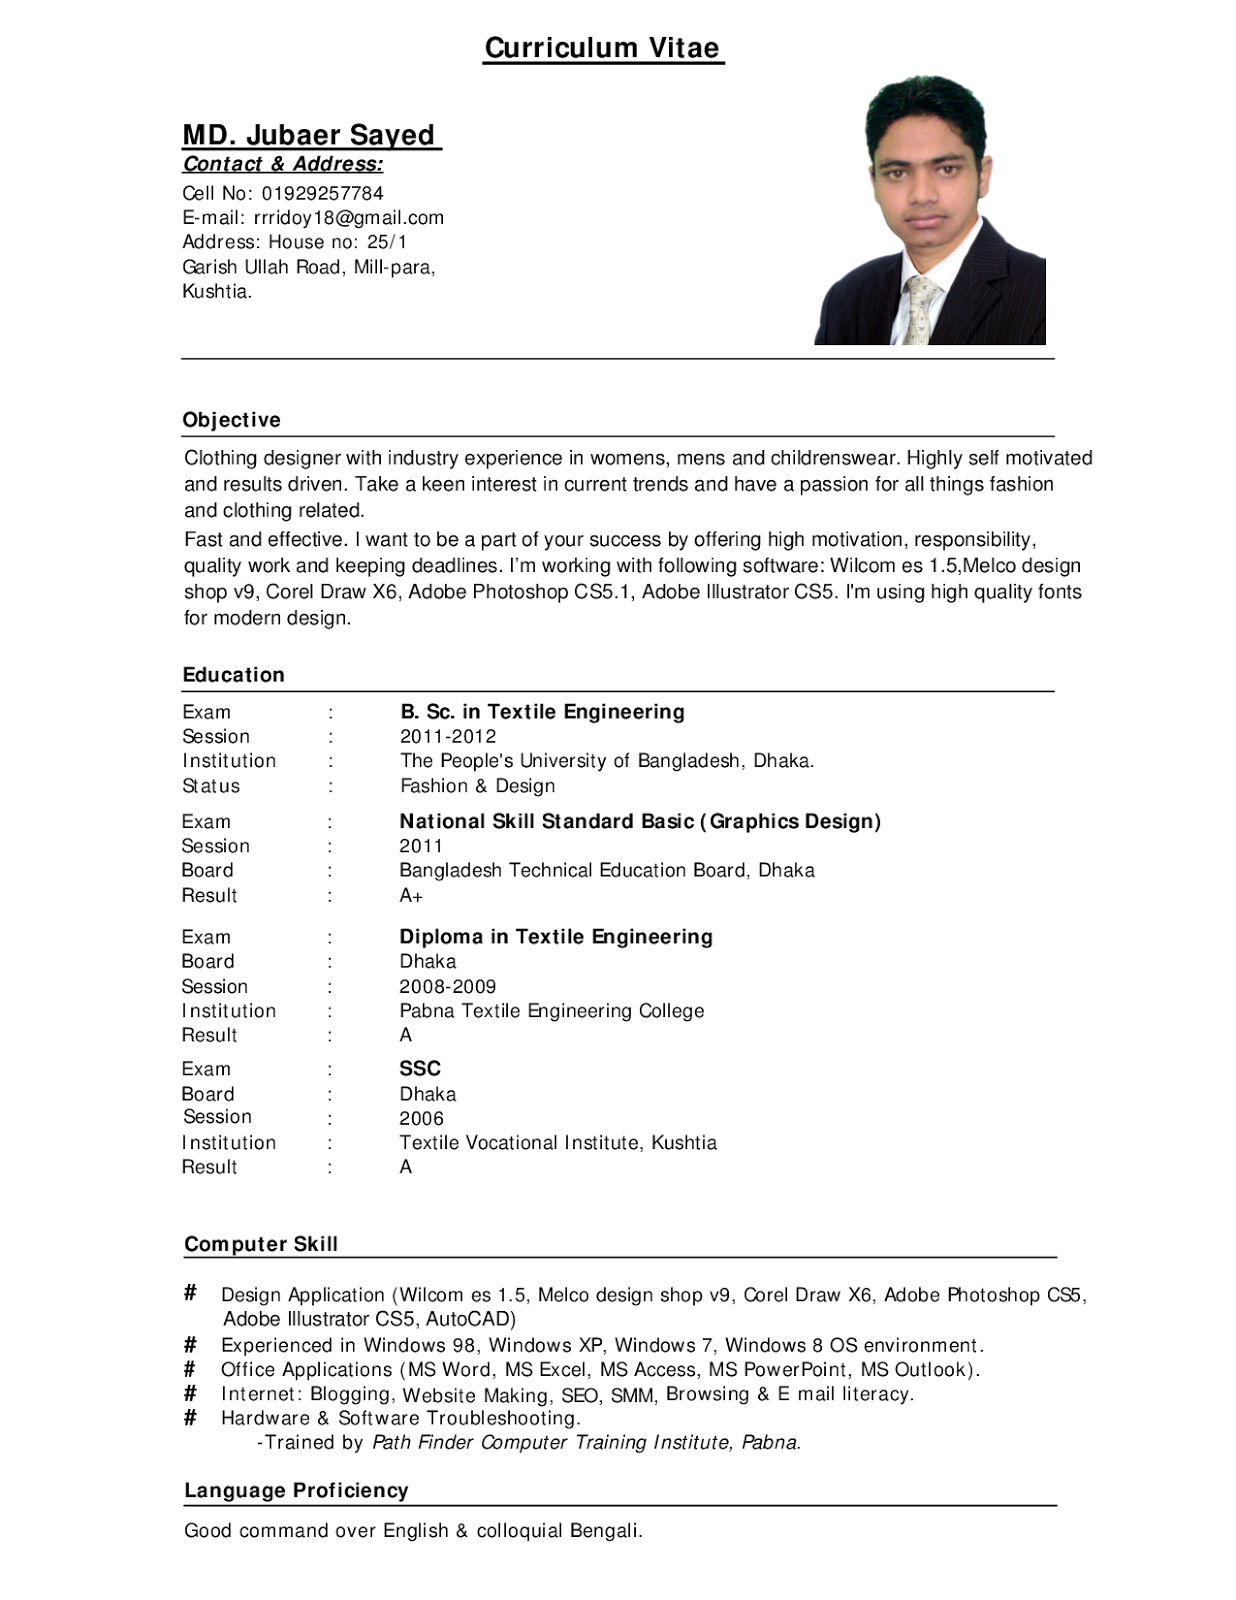 resume Best Resume Images resume samples pdf sample resumes pinterest resumes